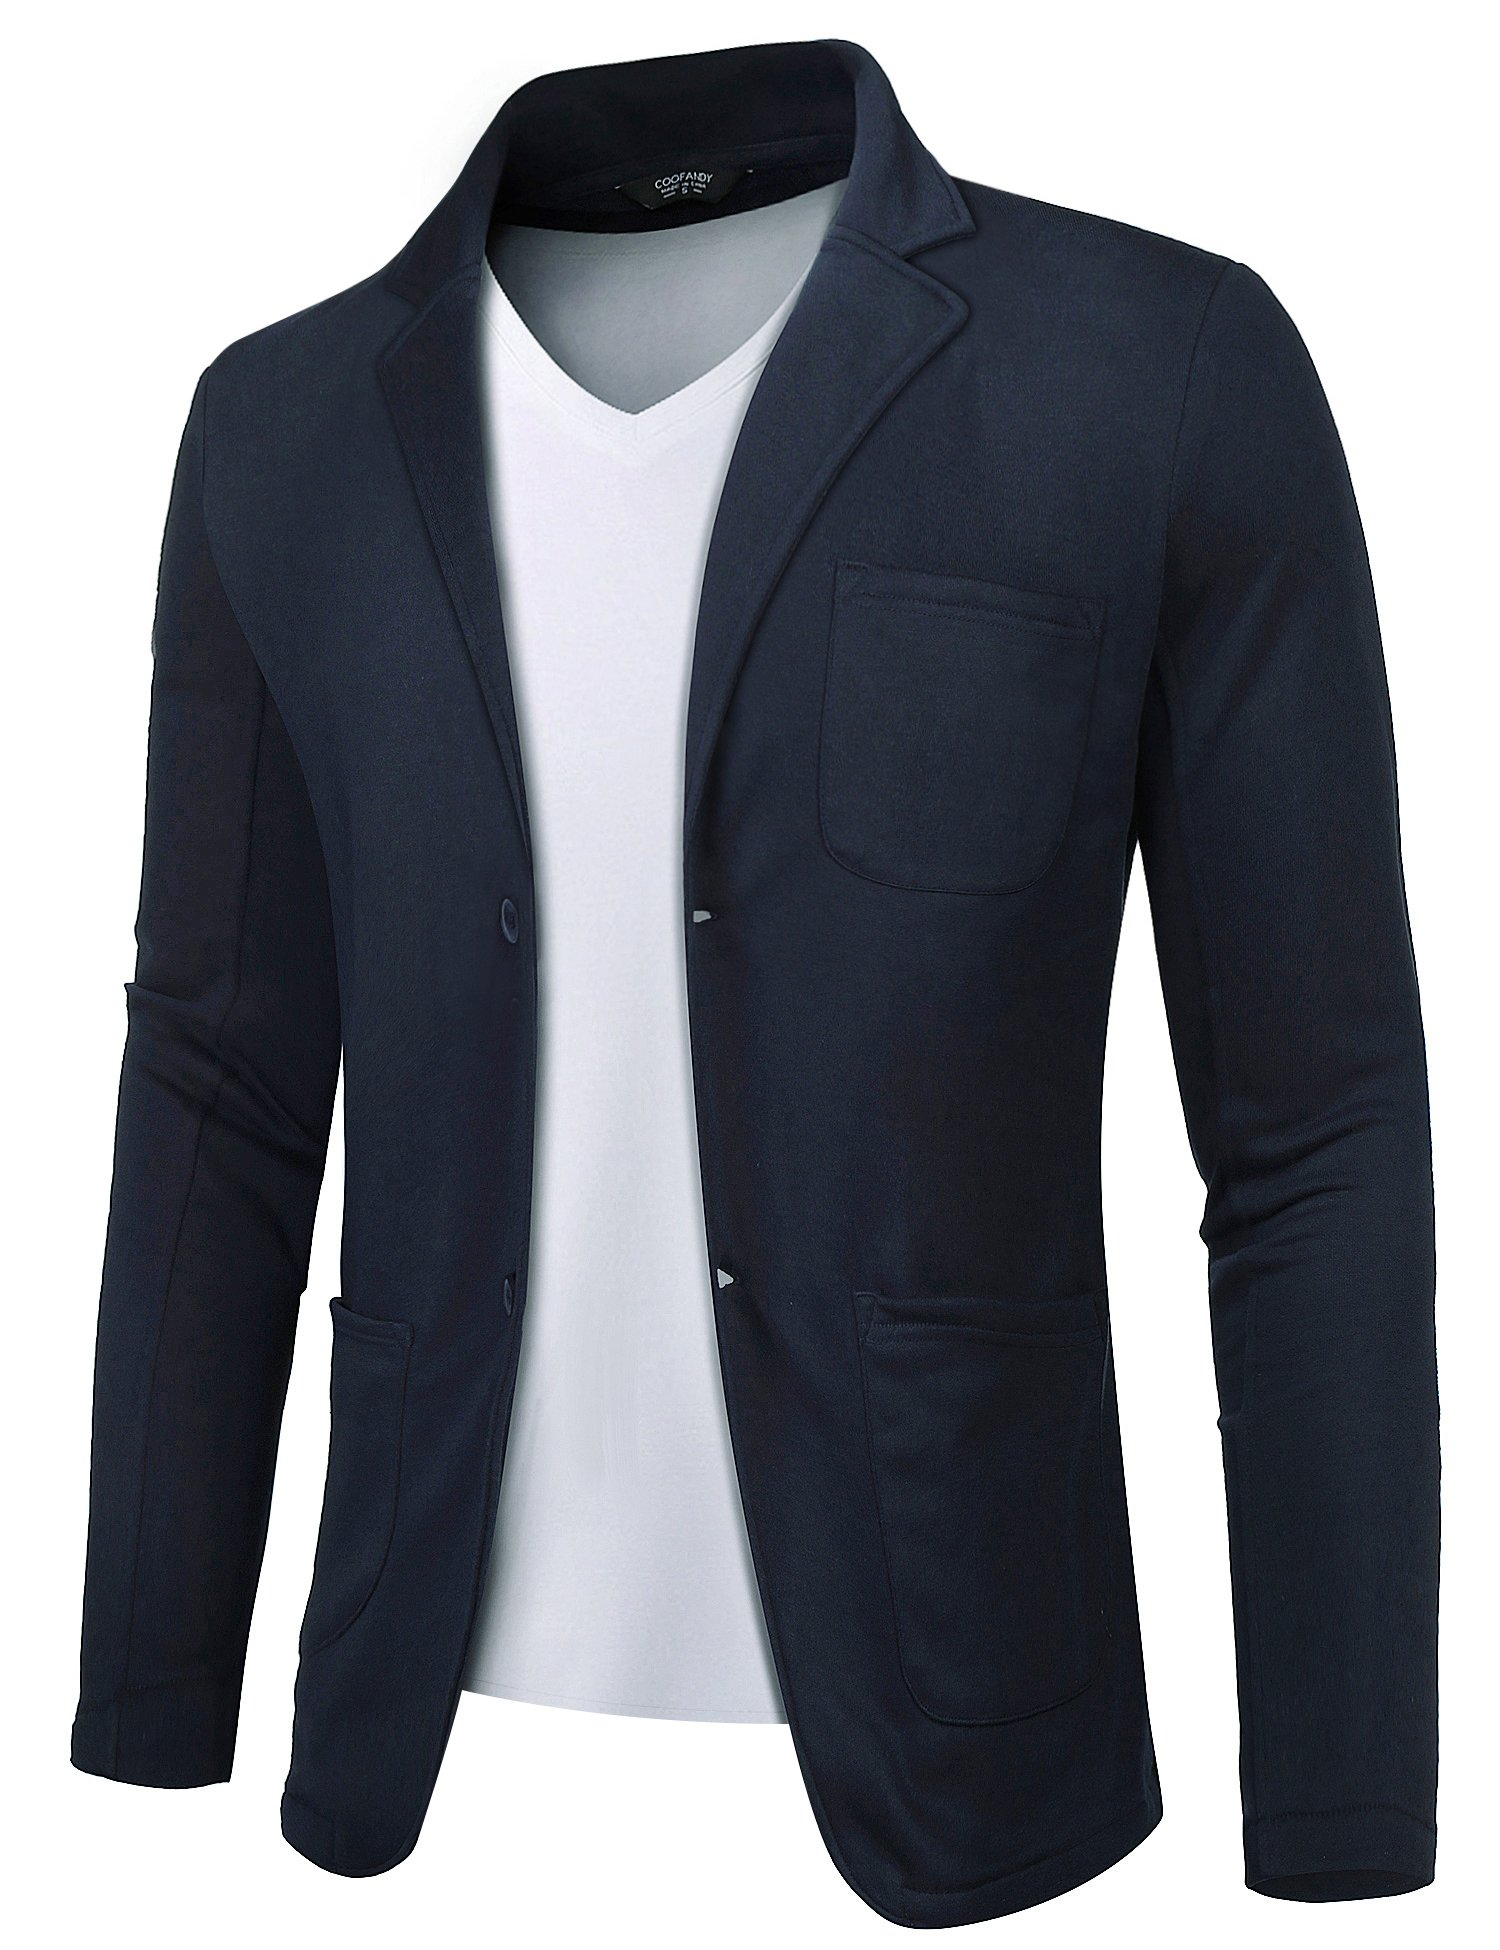 COOFANDY Mens Casual Two Button Suits Lapel Blazer Jacket Lightweight Sport Coat